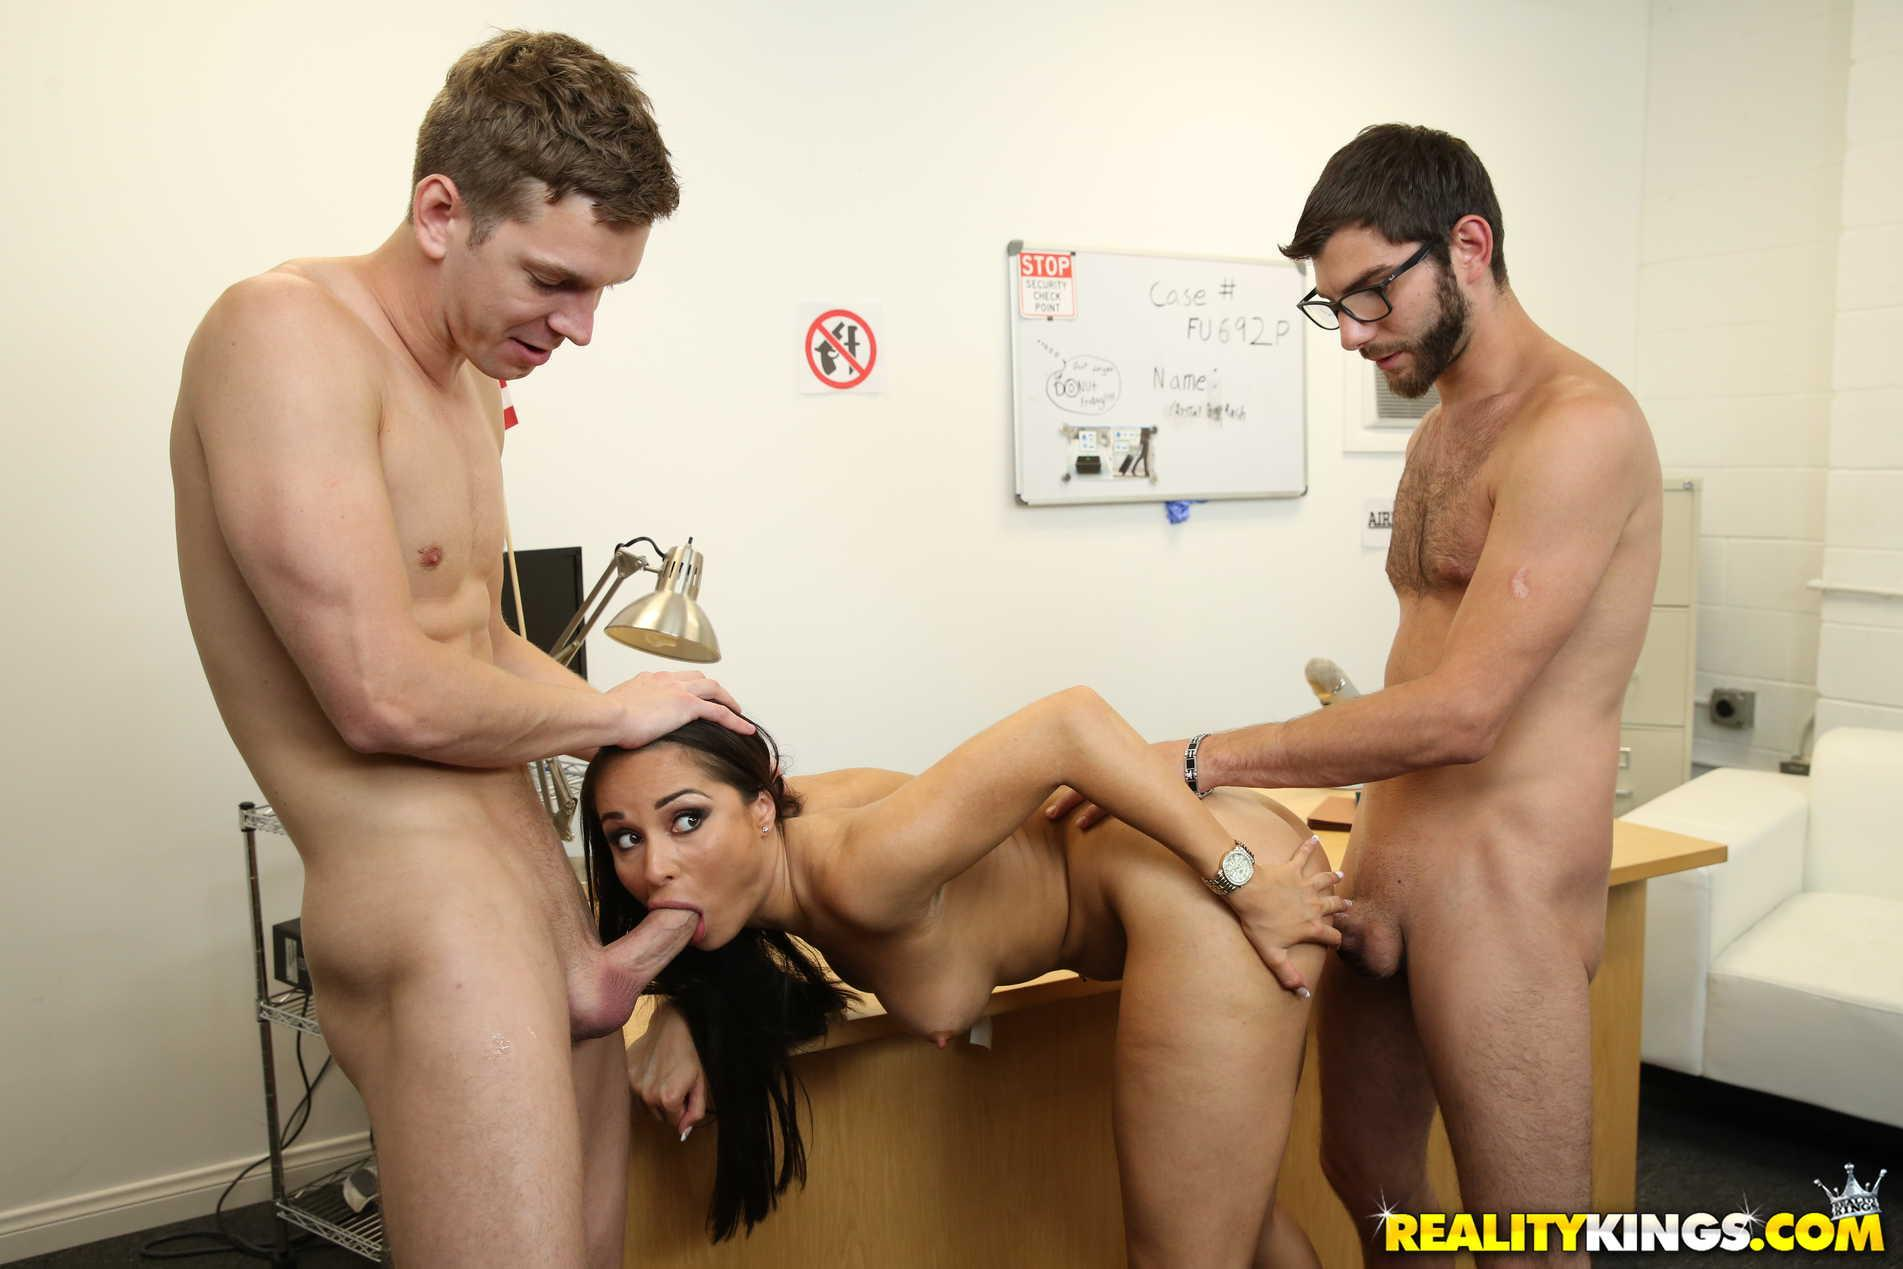 Sex in front of her friend hq porn search